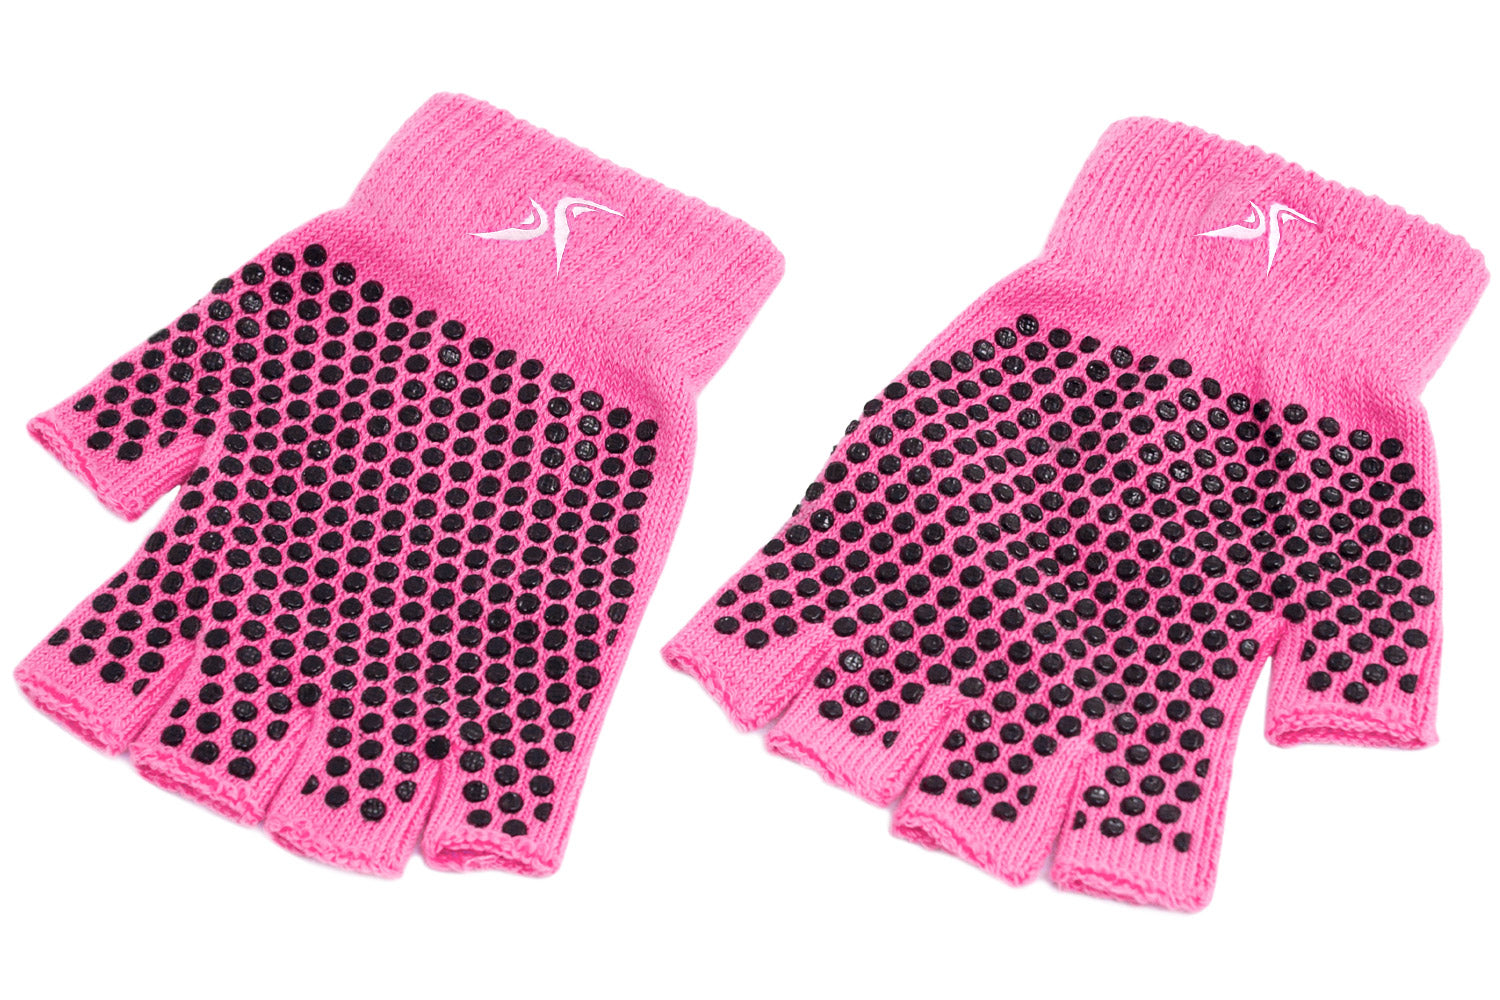 Pink Grippy Yoga Gloves